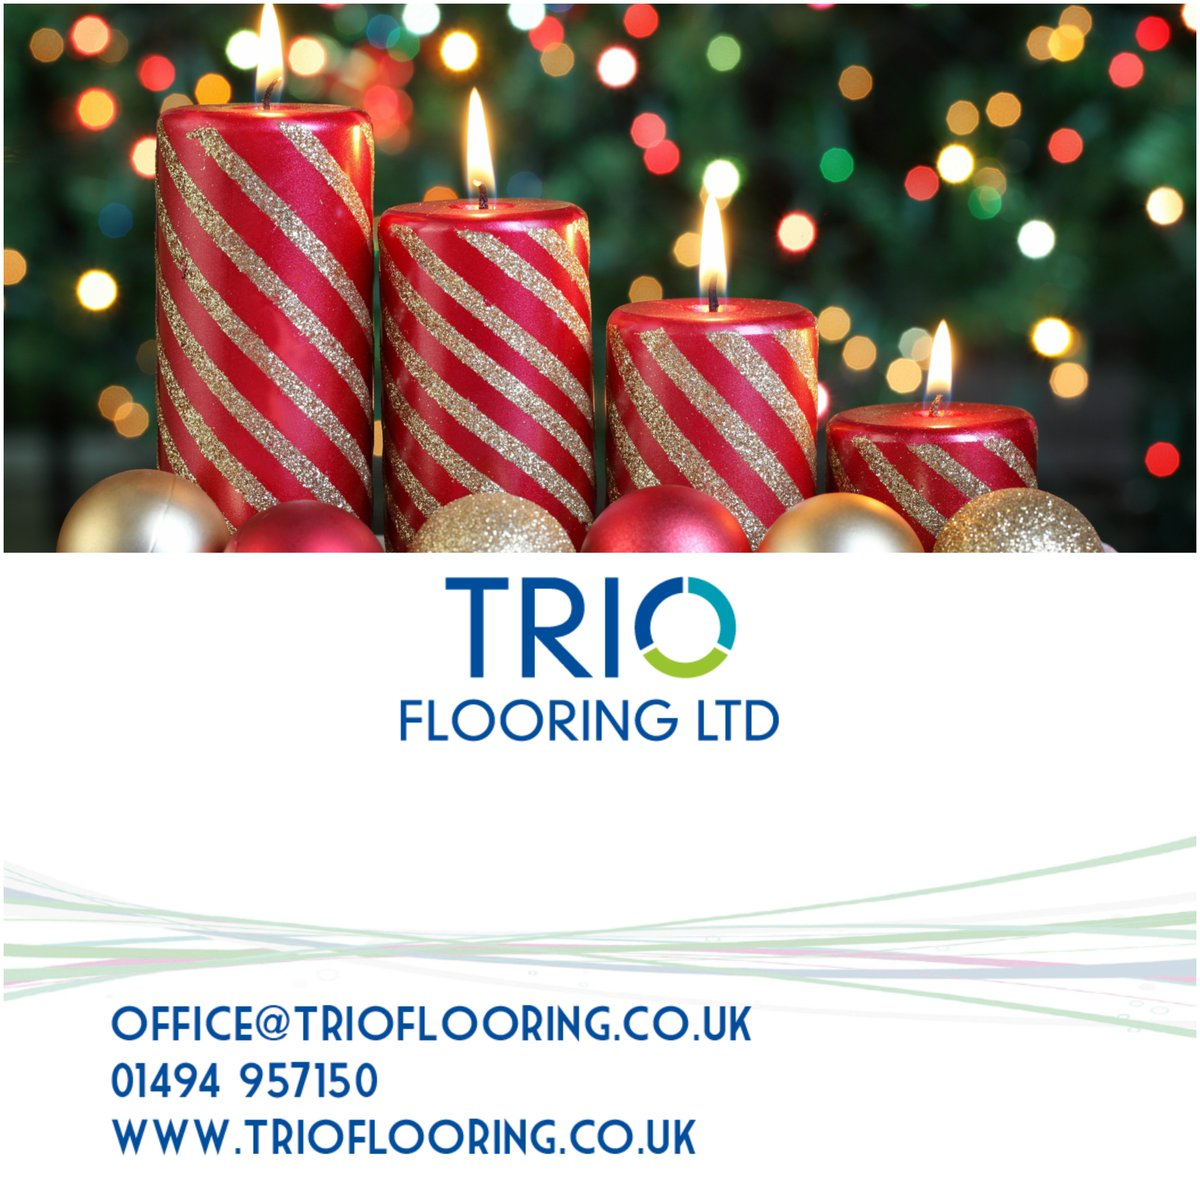 Trio Flooring LTD on Twitter: